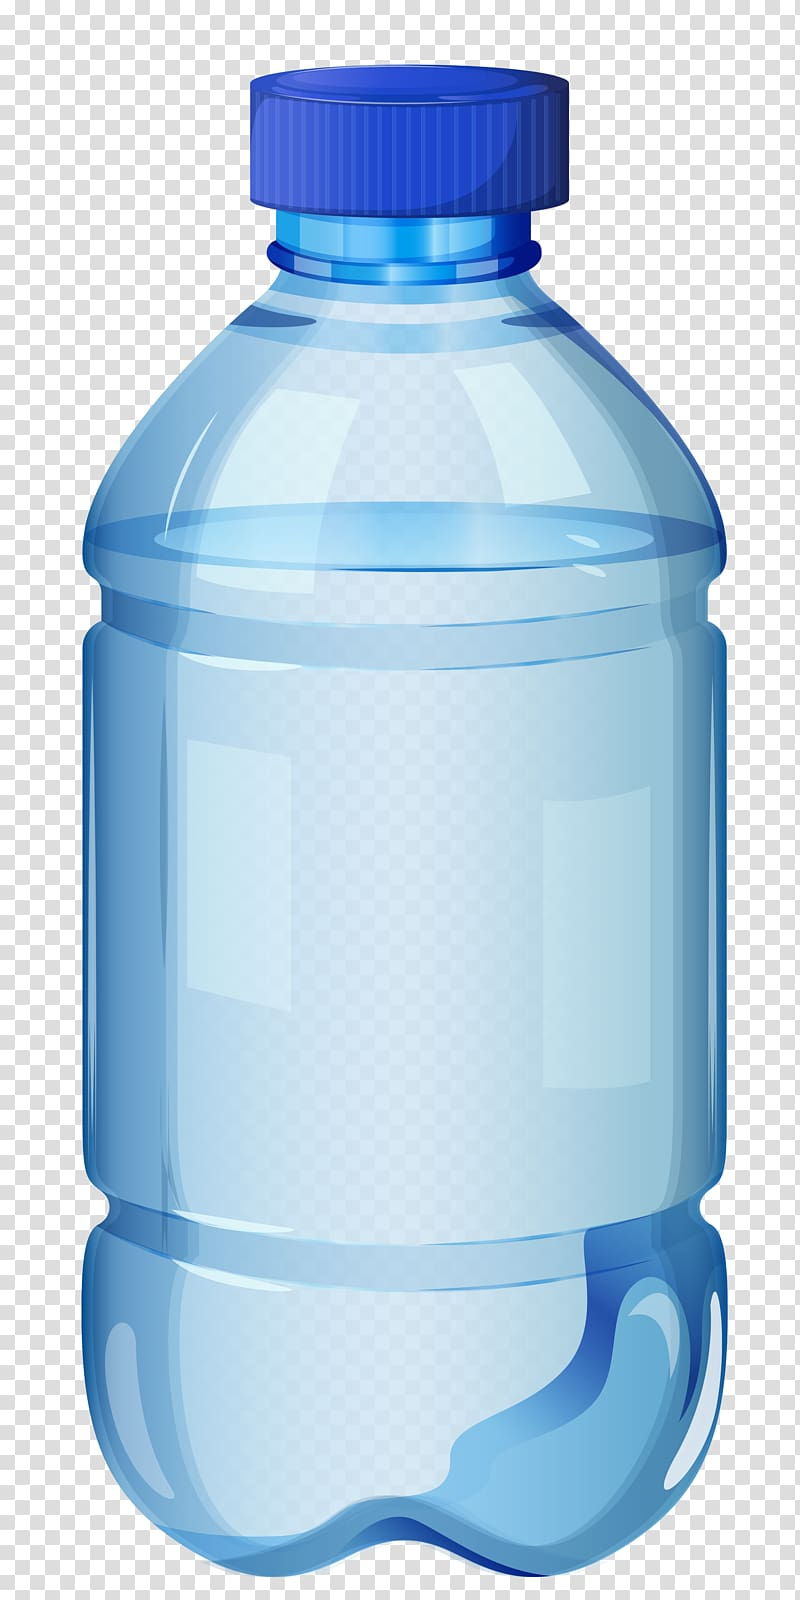 Clear and blue bottle filled with clear liquid, Water bottle.